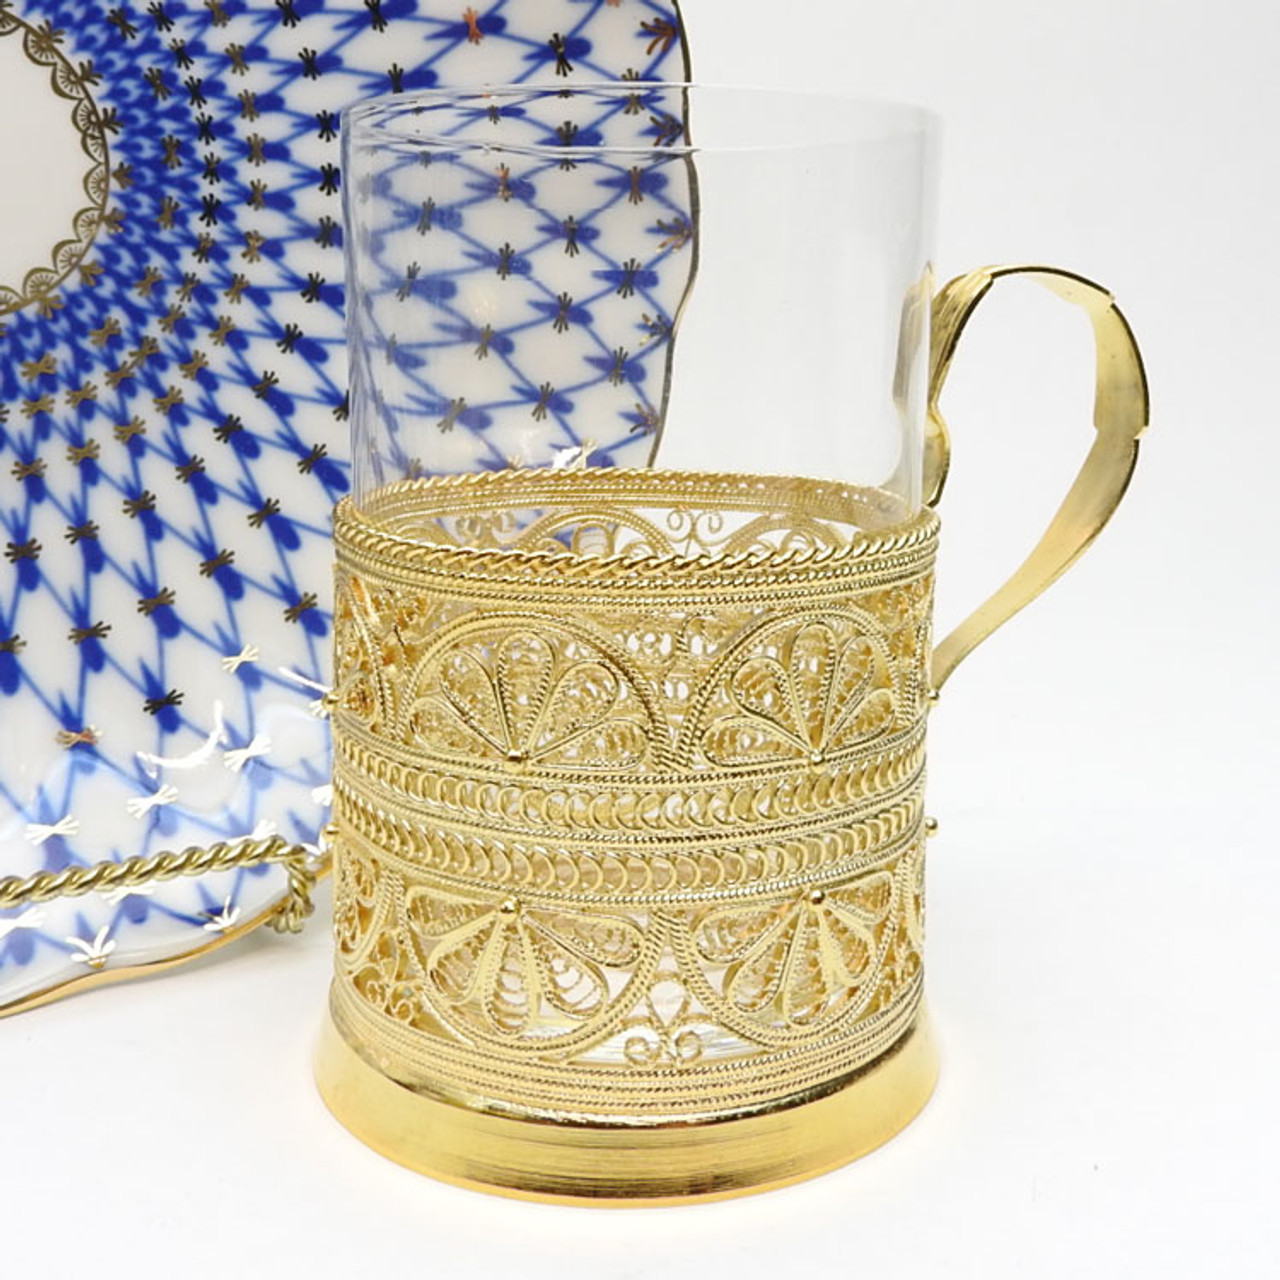 Lace (Кружевной) Filigree Tea Glass Holder